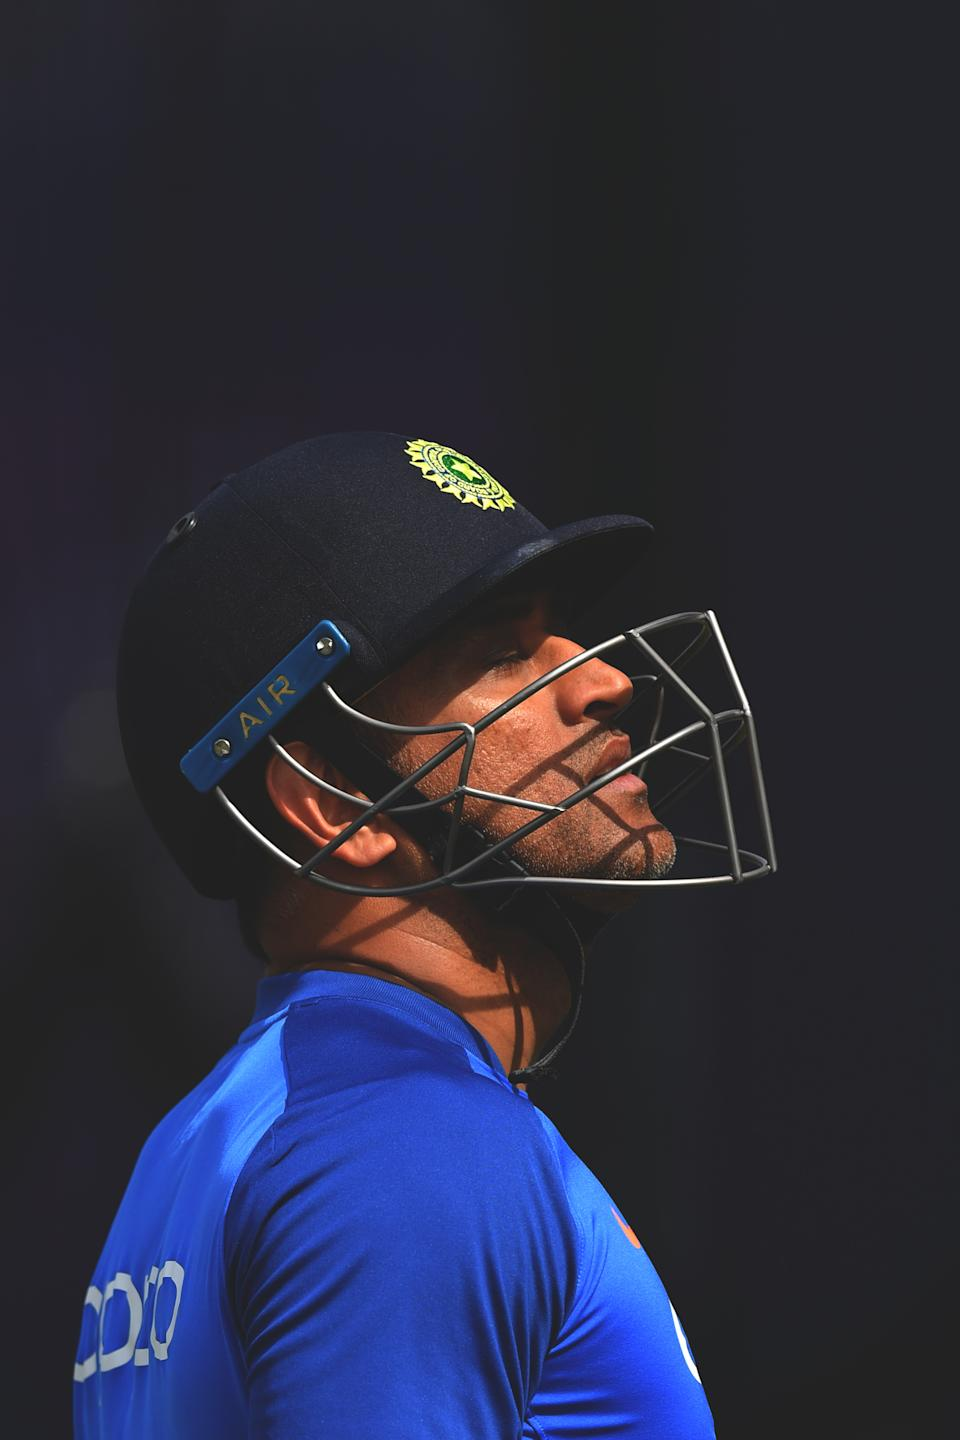 It's saying something that MS Dhoni's popularity rivals that of Sachin Tendulkar. From humble beginnings, Dhoni rose to lead the Indian cricket team to the World T20 and ICC World Cup wins, earning along the way the moniker of 'Captain Cool' for his unflappable temperament. His IPL exploits, during which he solidified his role as the game's ultimate 'finisher', further endeared him to the masses.